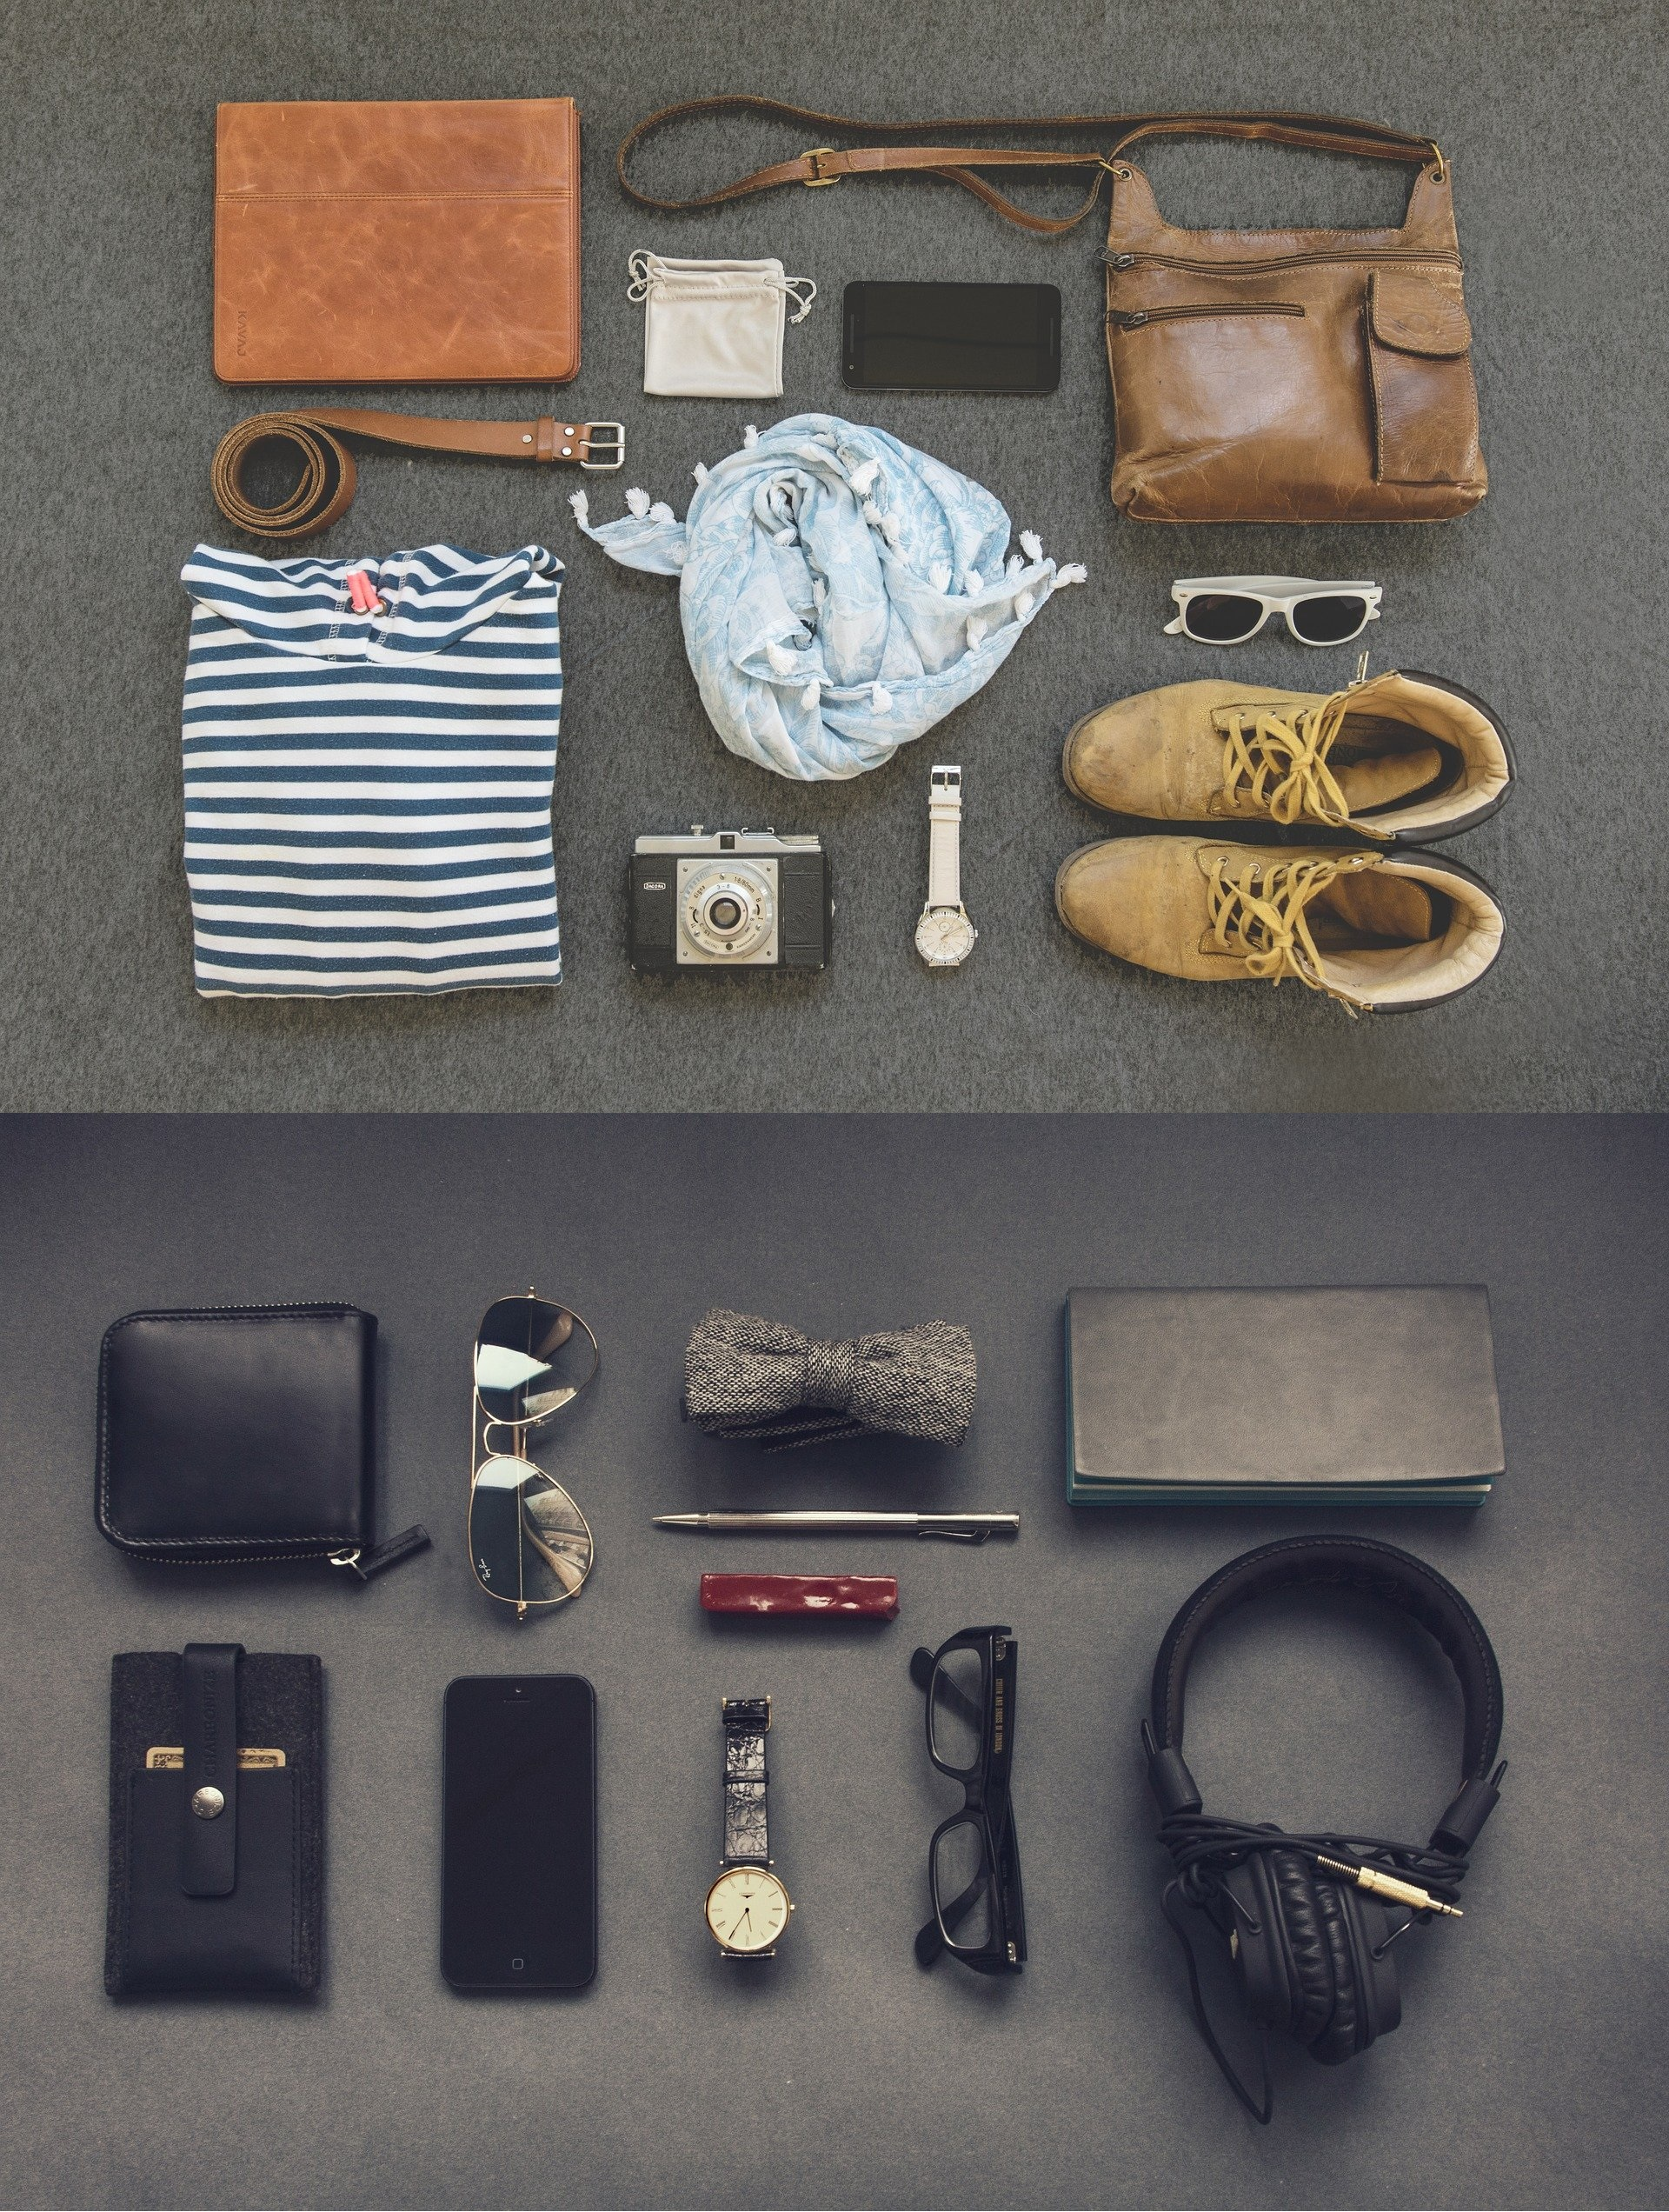 How Much Do Accessories Affect Your Clothing Style?